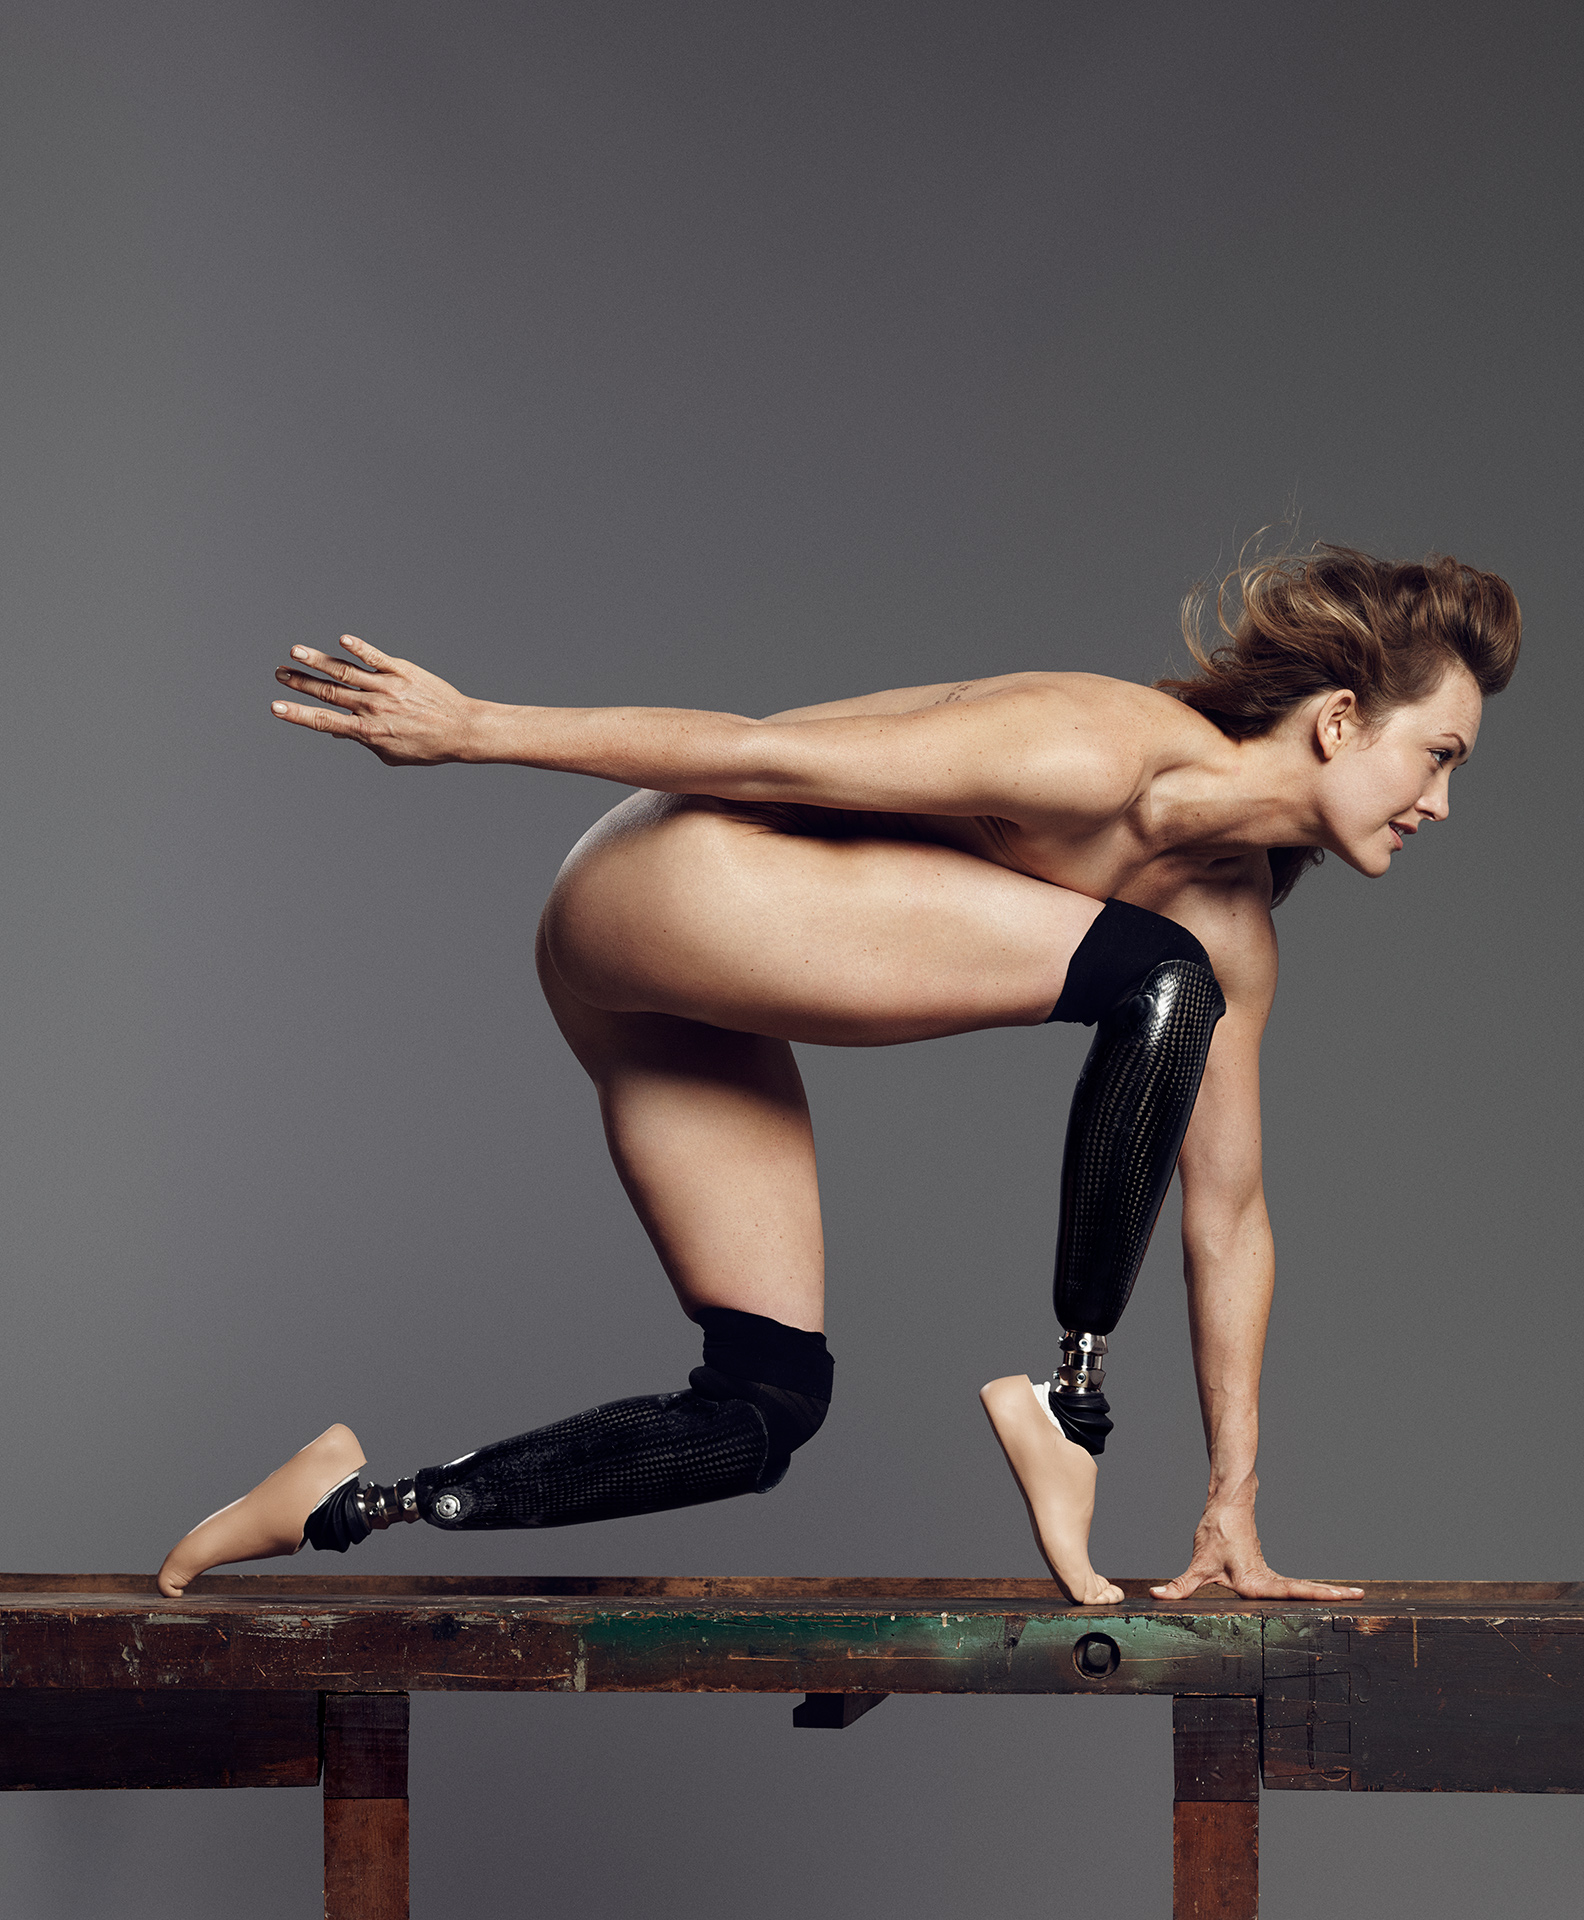 Amy Purdy, The Bodies We Want 2014, ESPN The Body Issue, Paola Kudacki, Amy Purdy Nude